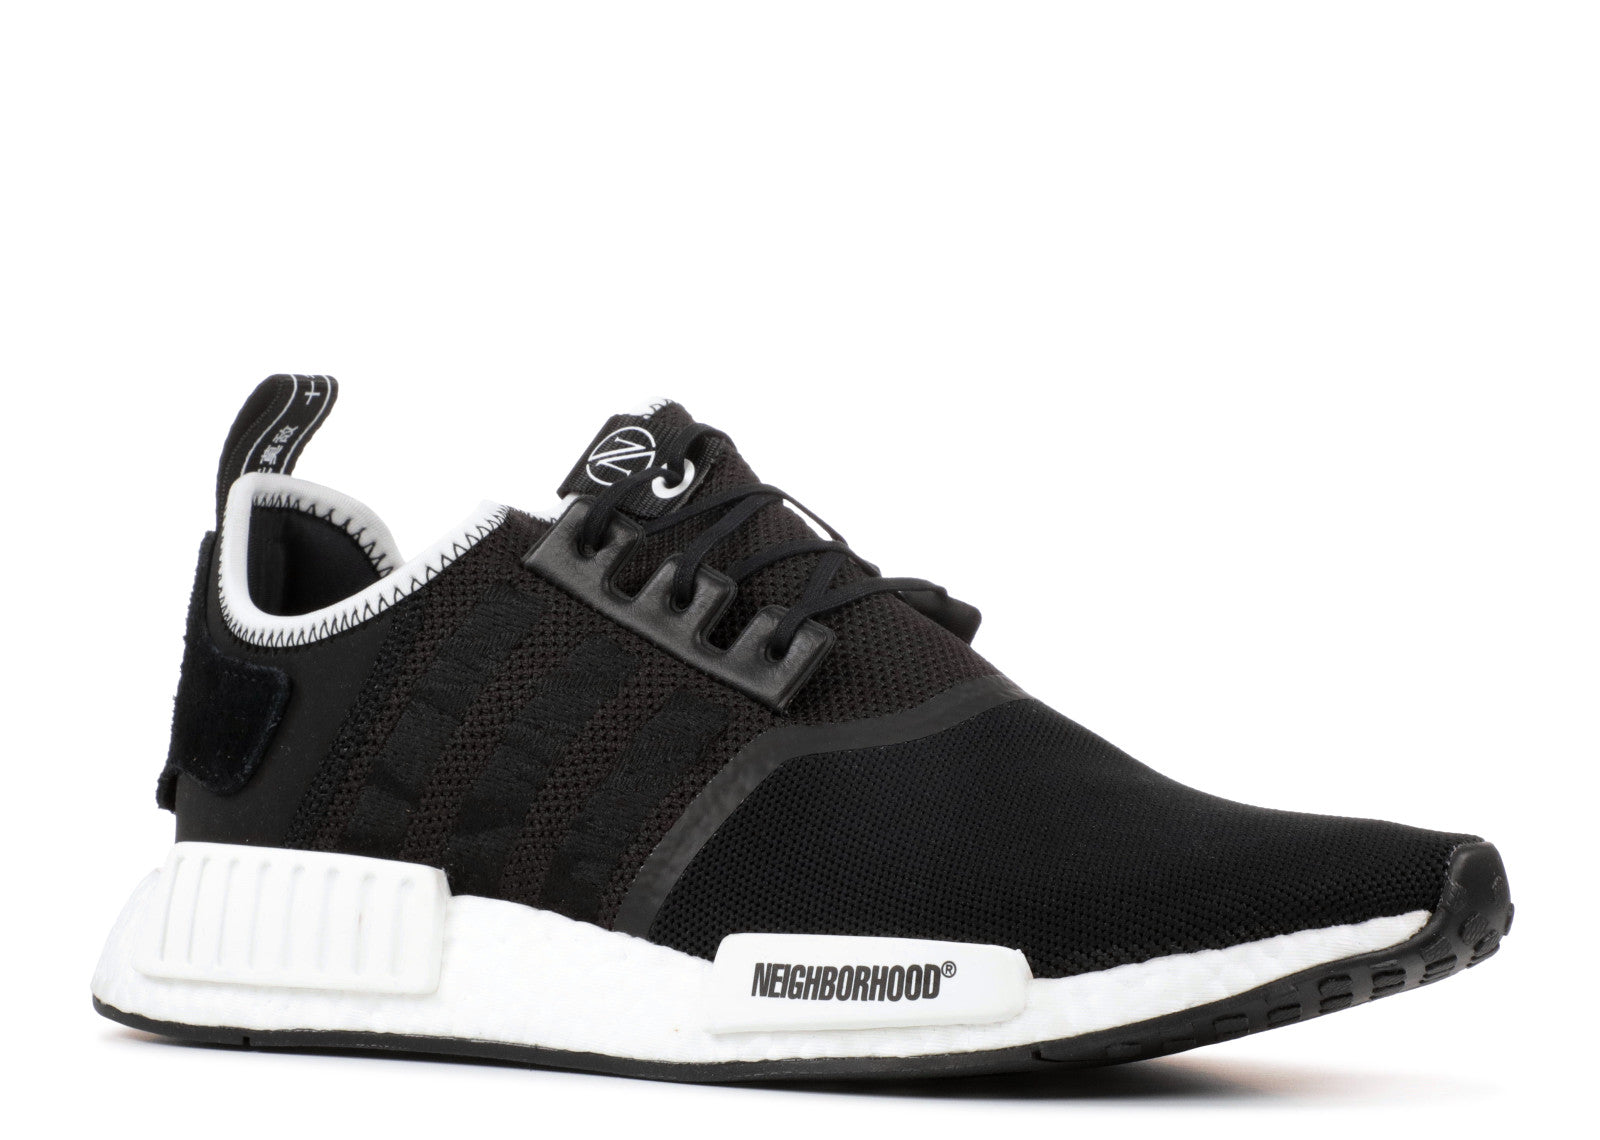 best service cac0a 7a504 INVINCIBLE X NEIGHBORHOOD X NMD R1 – AQ STORES